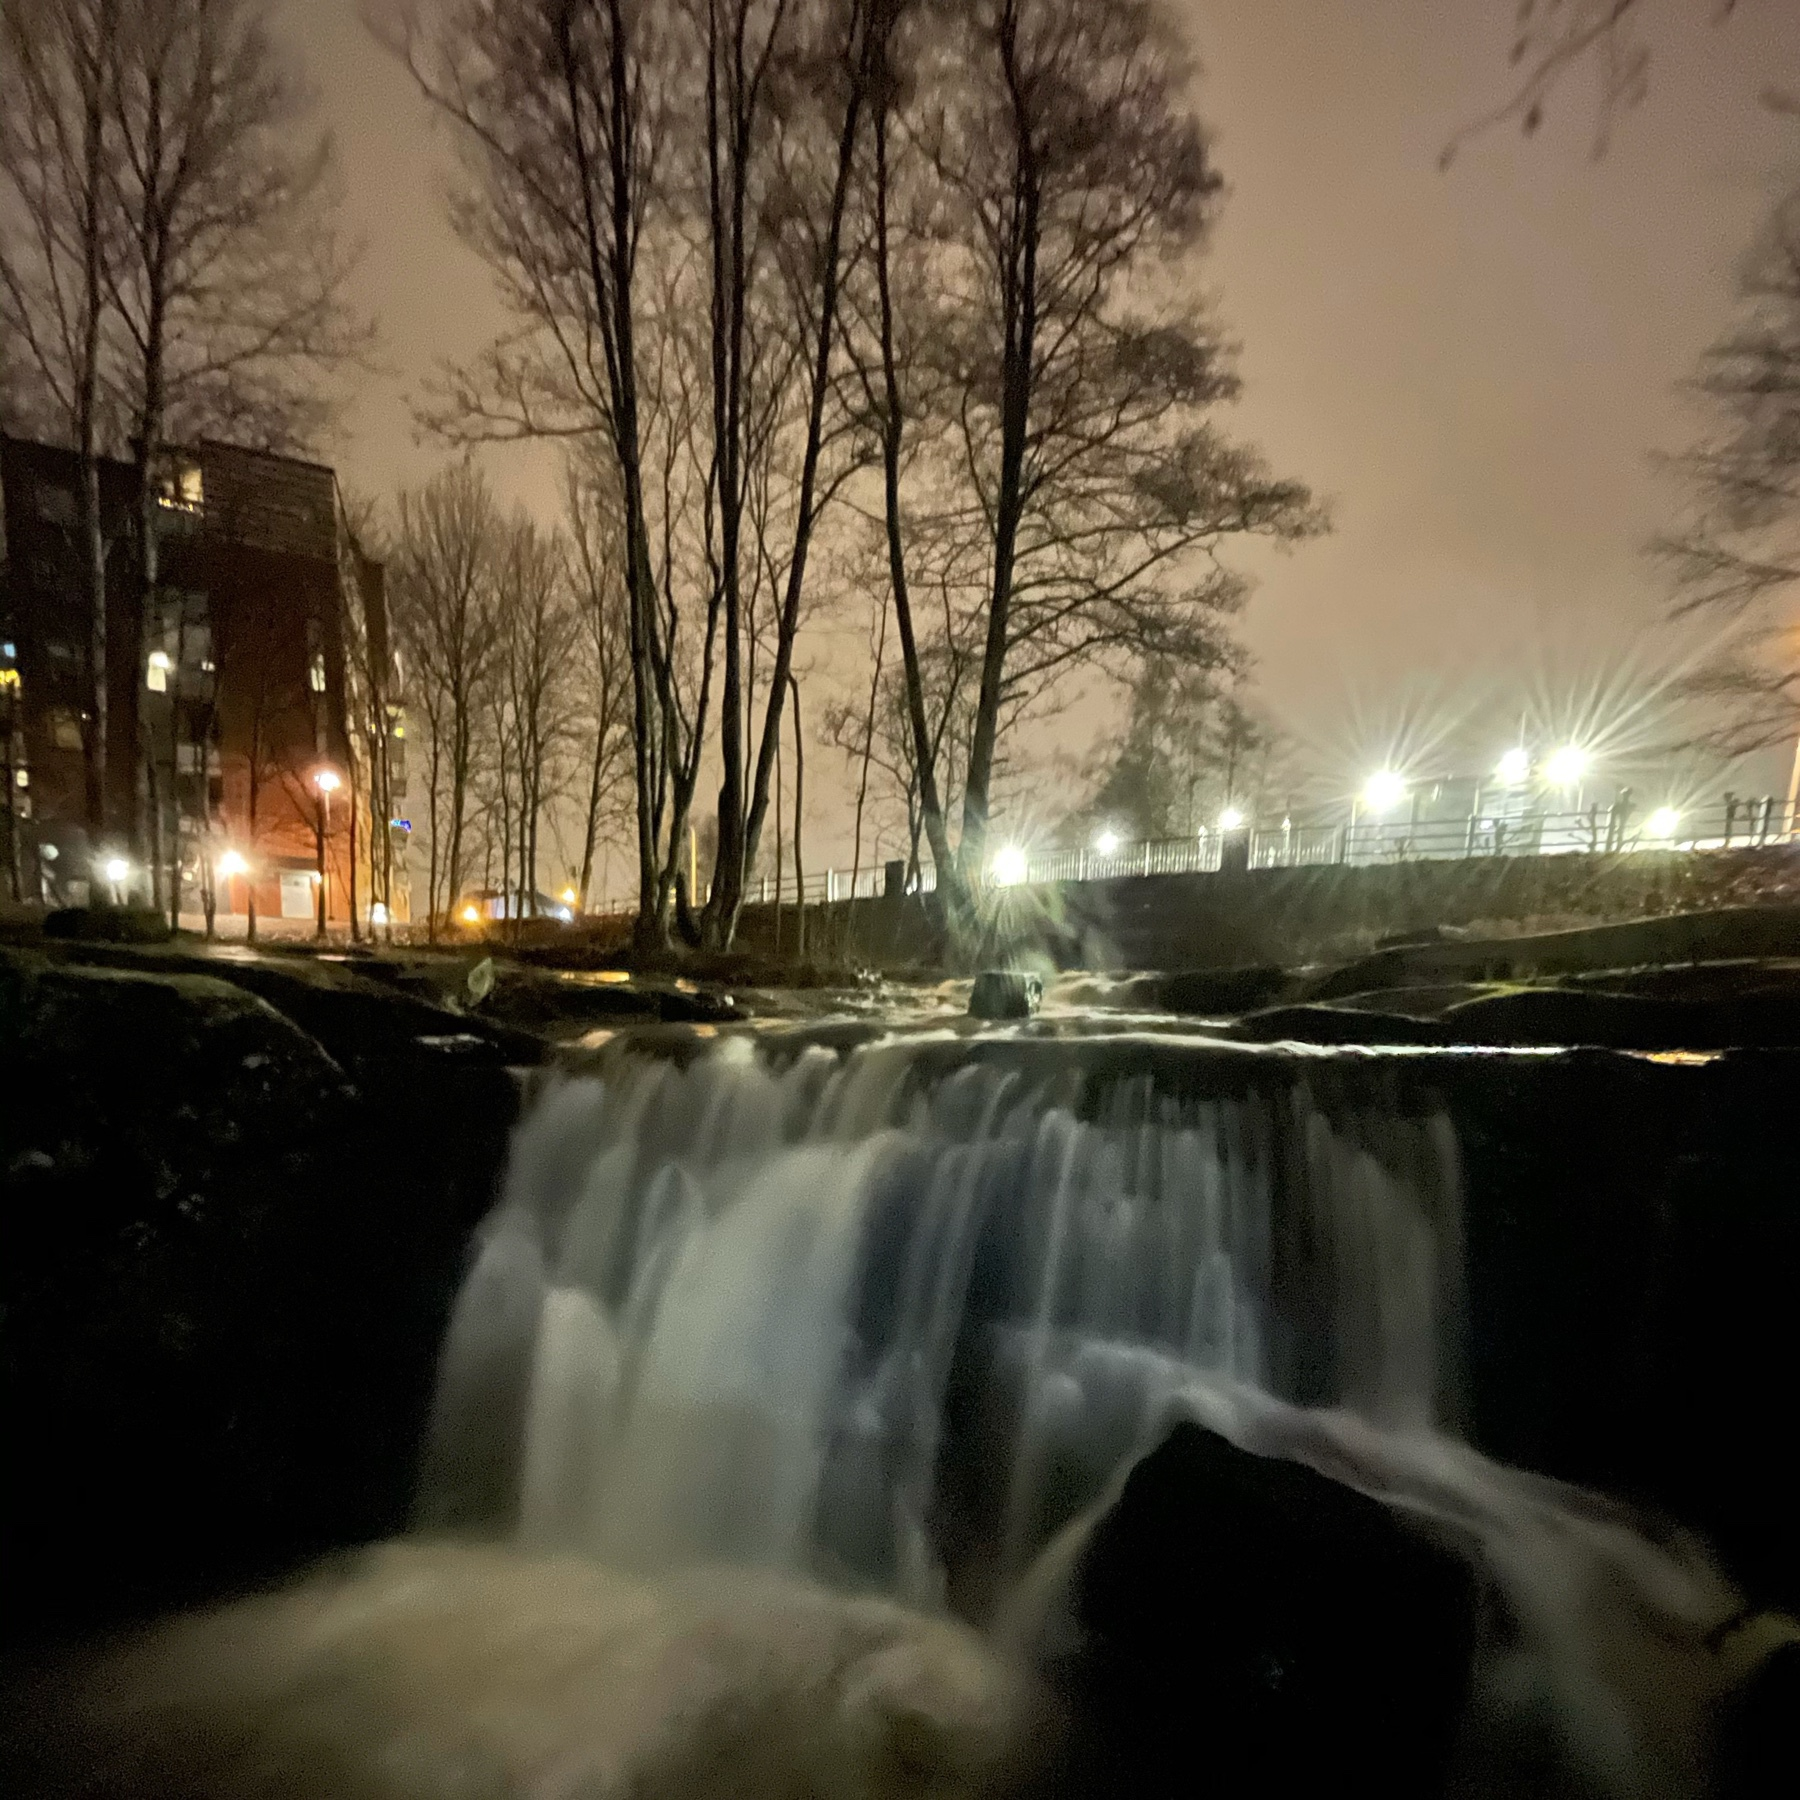 waterfall, street lights, a stone wall a bit further out and a steel railing